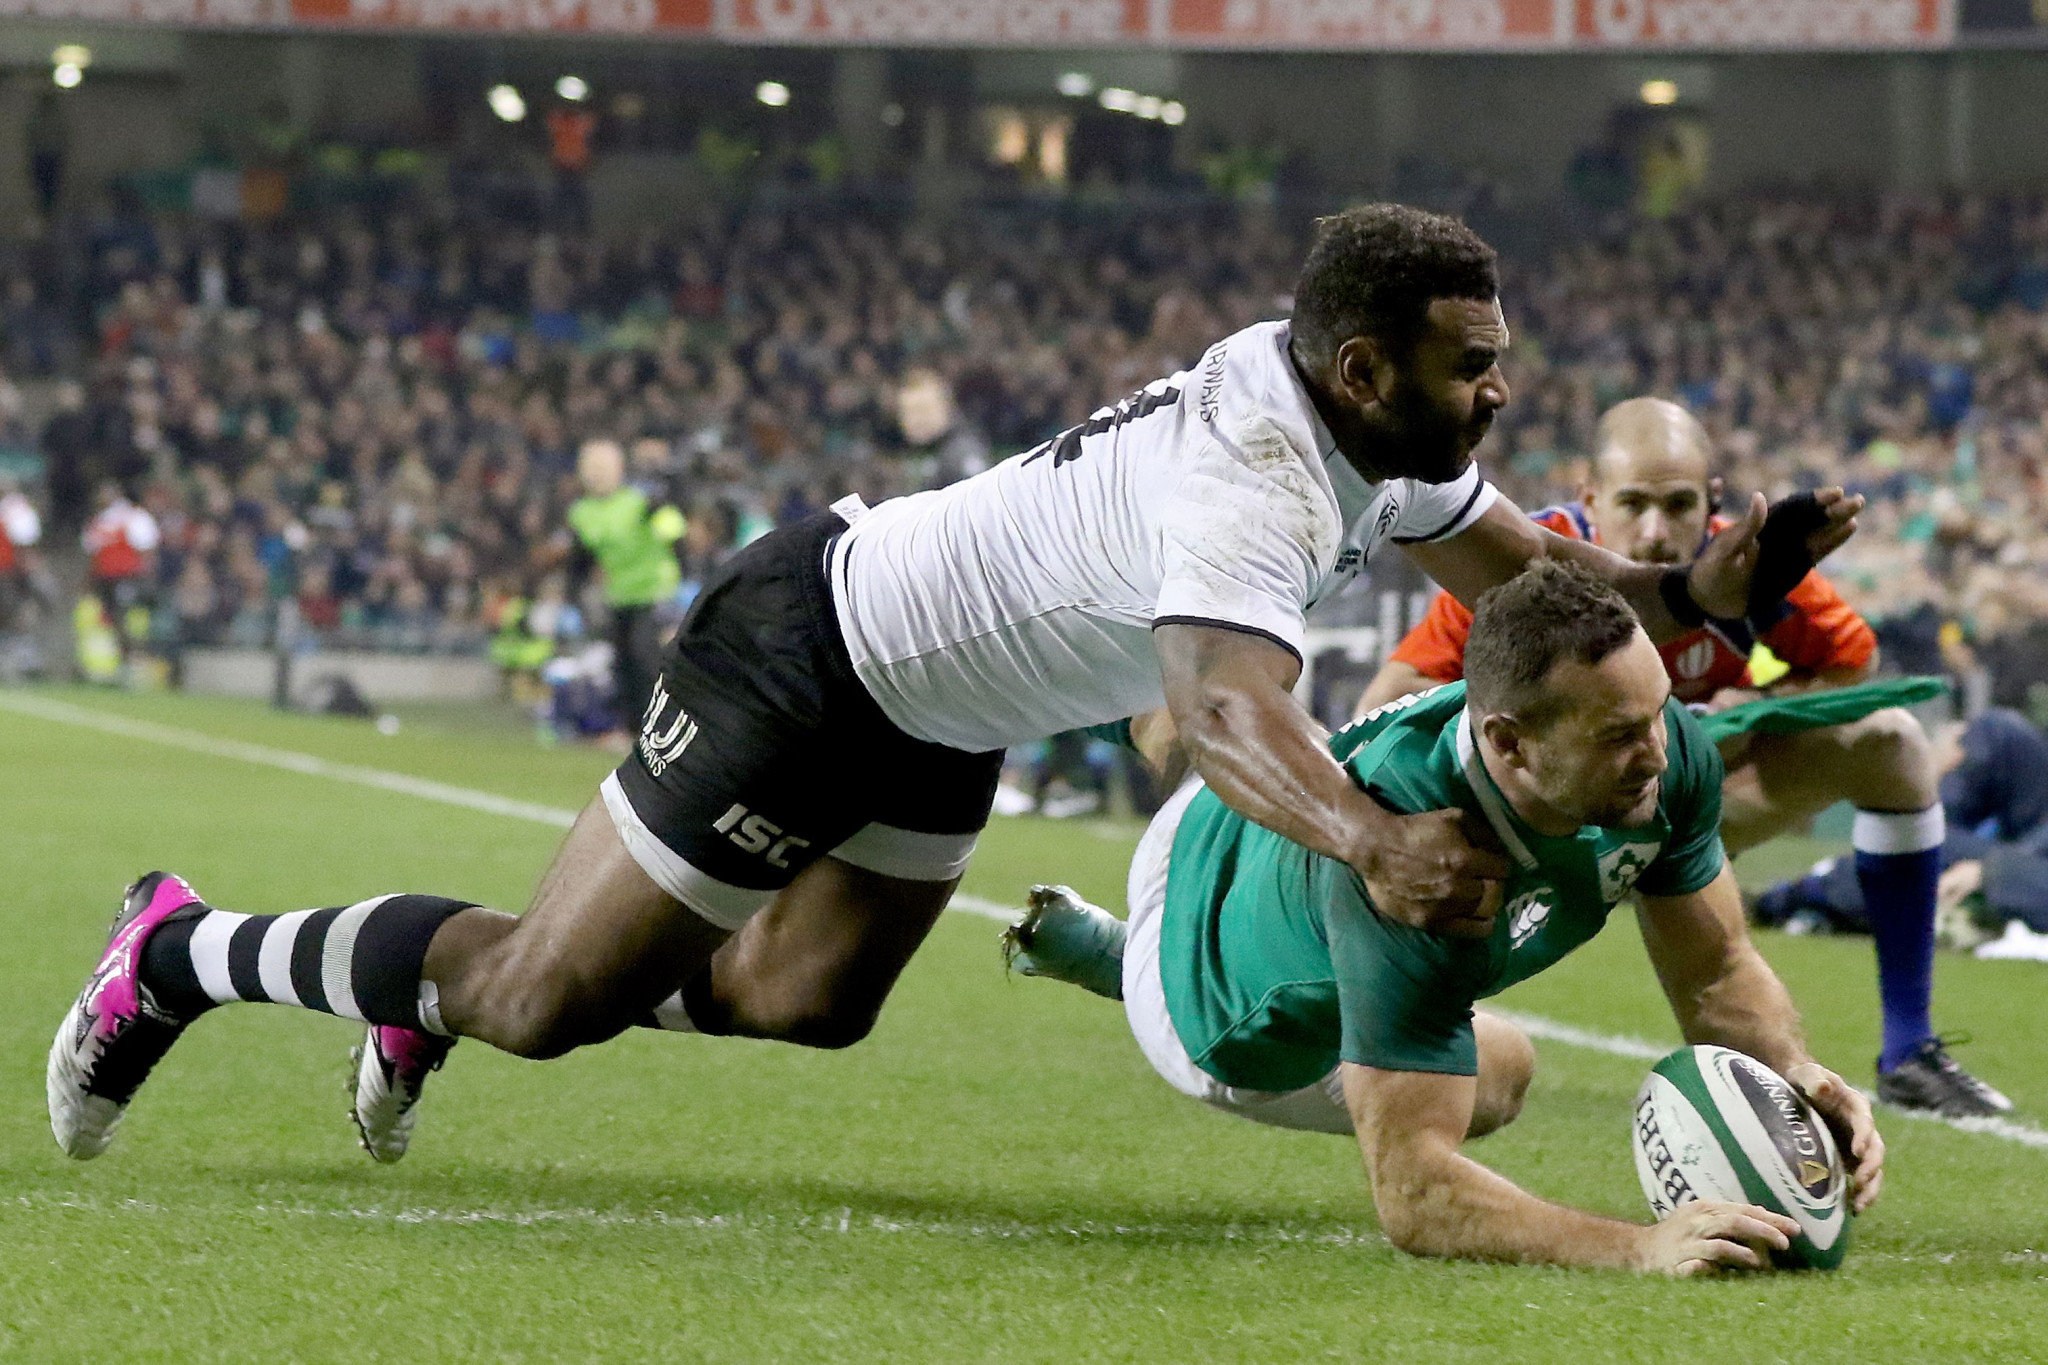 Ireland calls off Fiji rugby tour due to COVID-19 outbreak in Pacific island